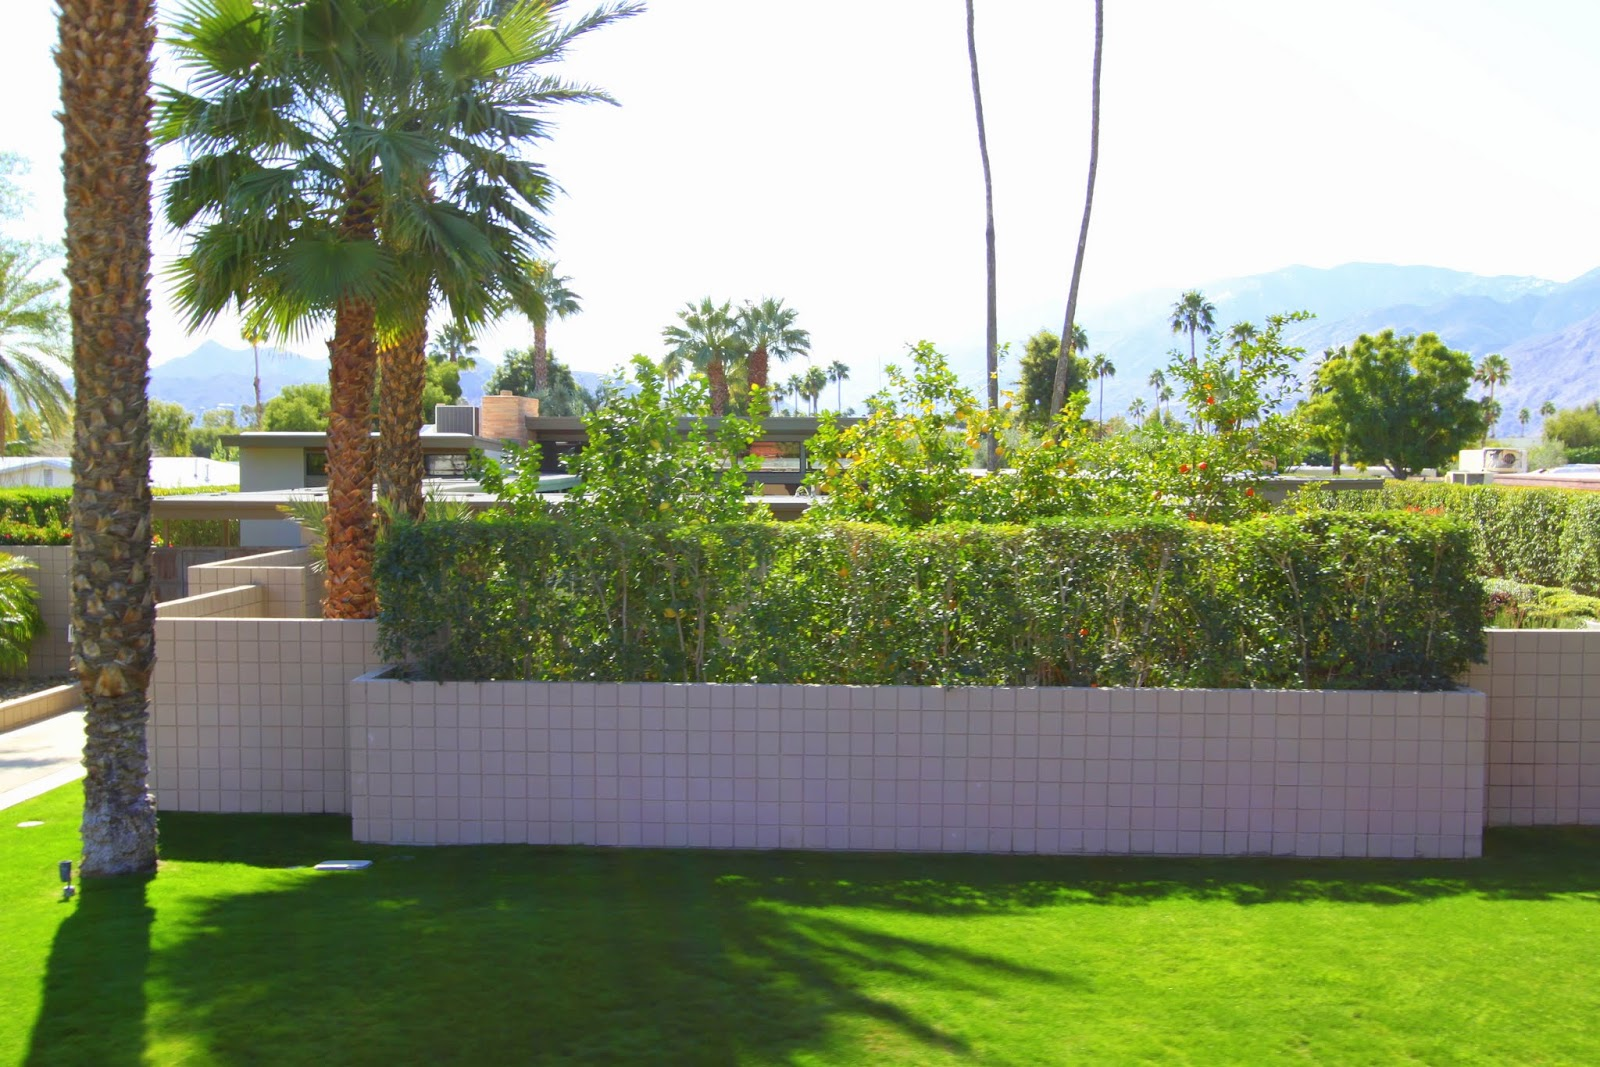 Sichtschutz Garten Niedrig Psmw Palm Springs Modernism Week The Hedge Tour Mid